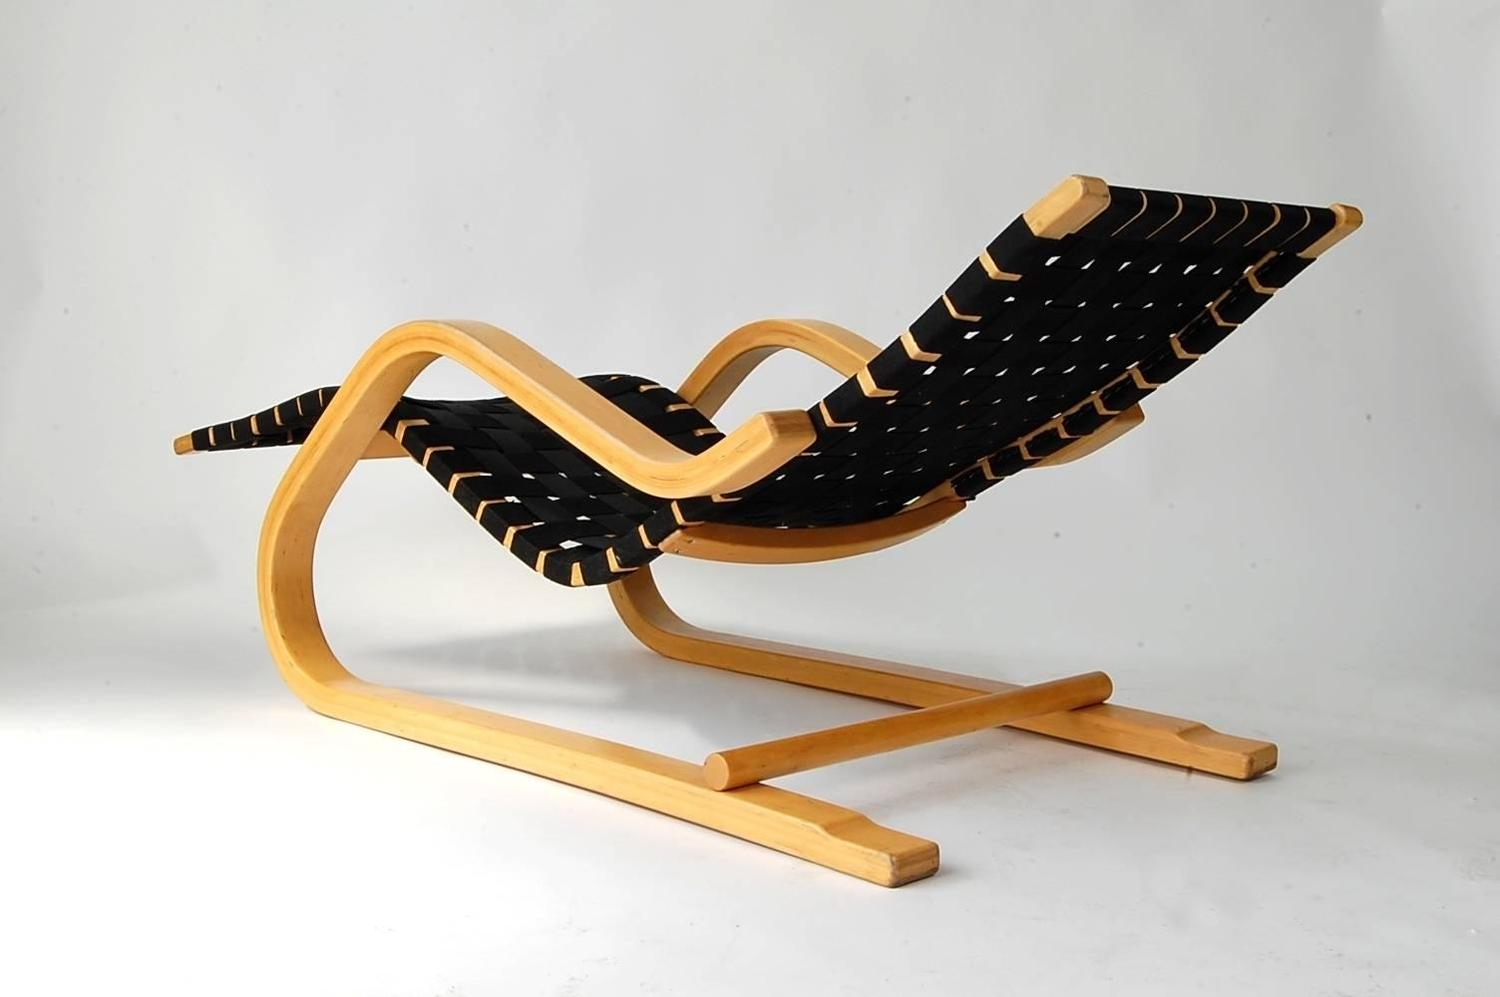 Alvar aalto model 43 chaise lounge for sale at 1stdibs for Alvar aalto chaise